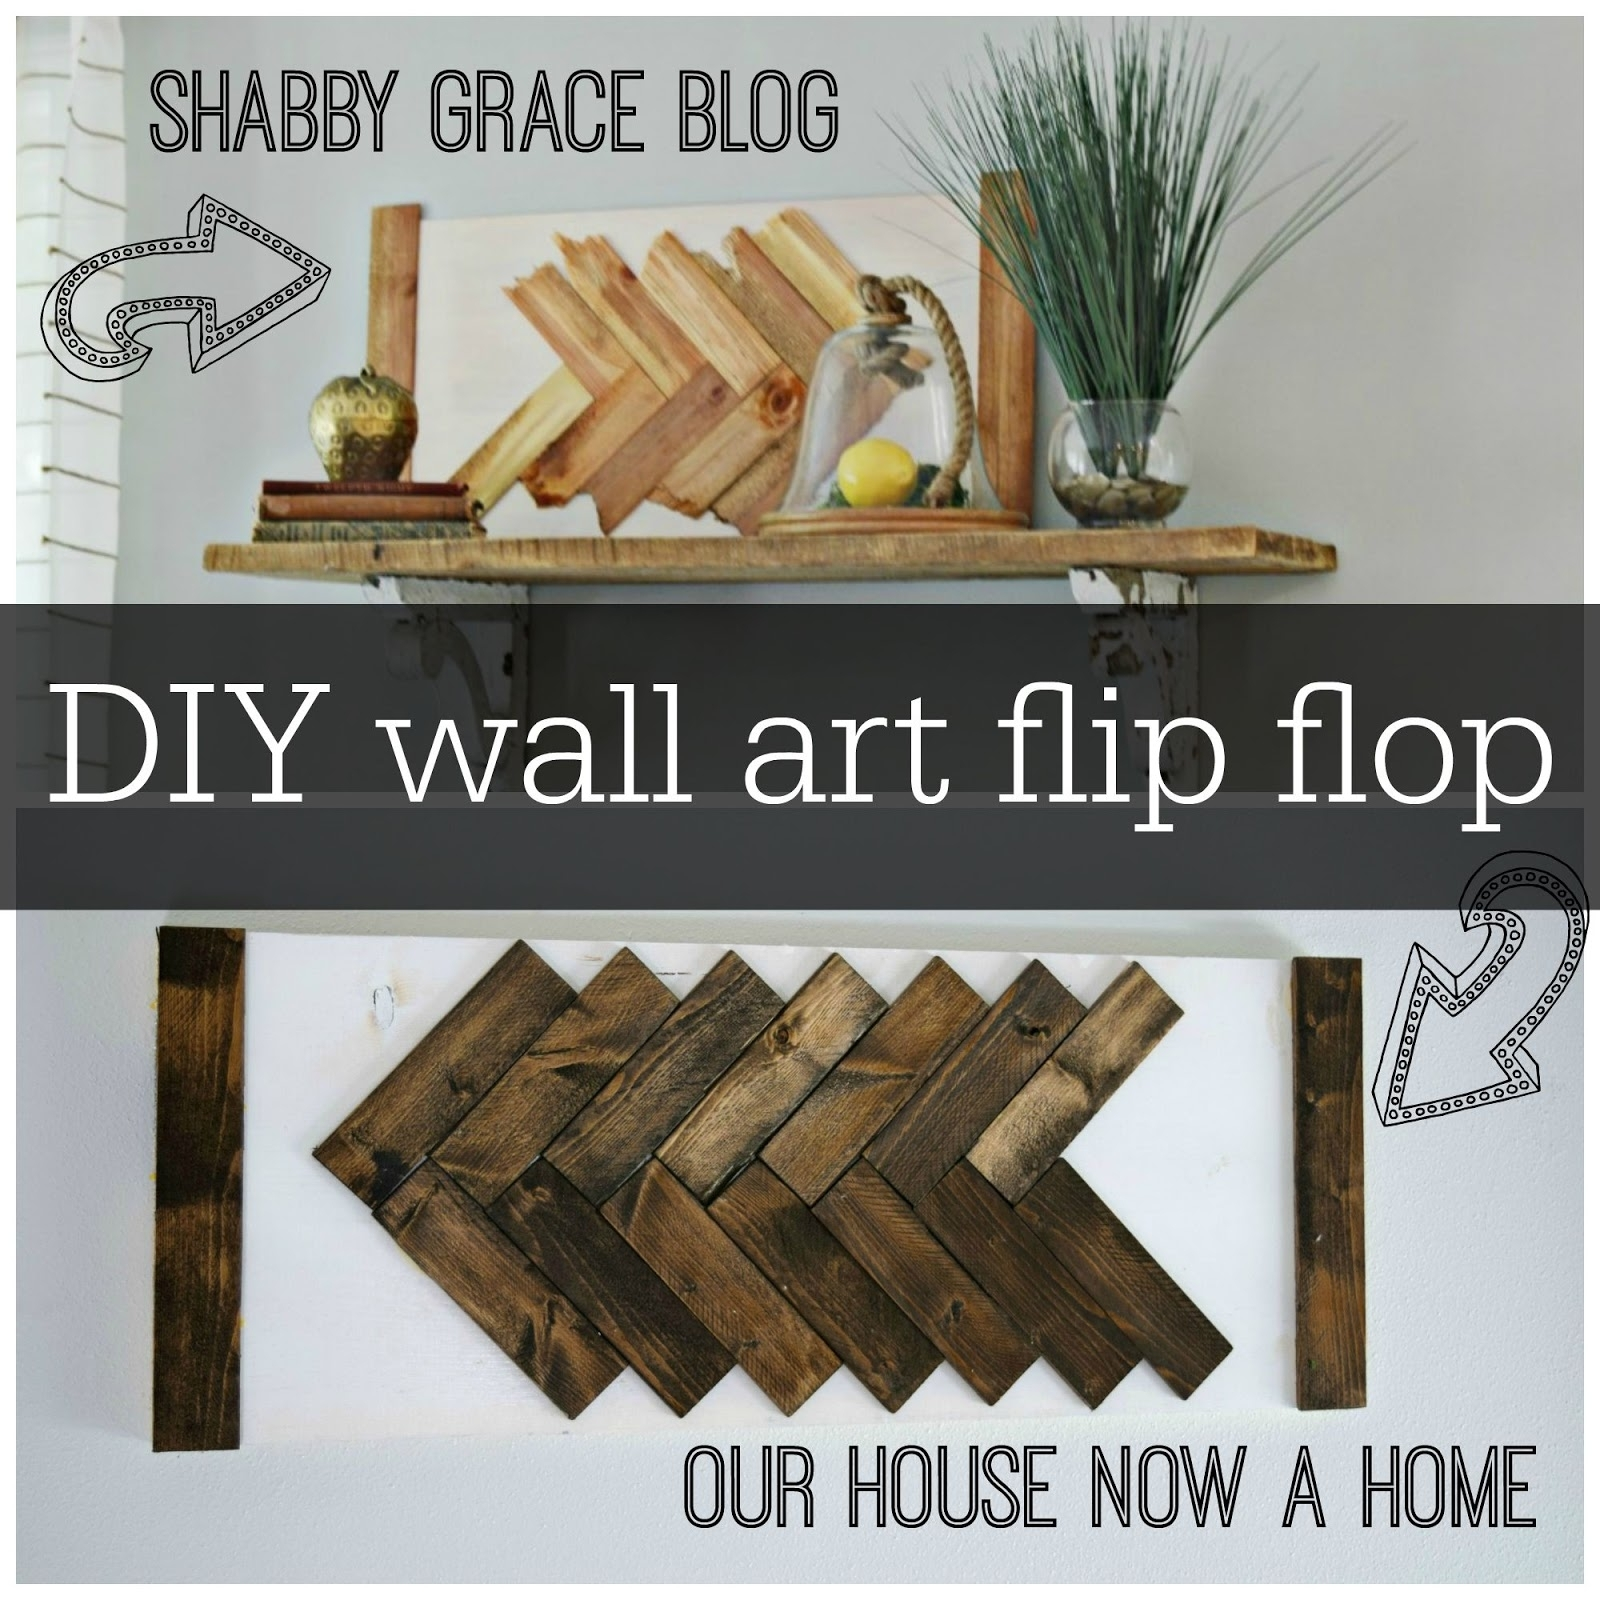 Diy Wall Art Flip Flop • Our House Now A Home In Most Up To Date Flip Flop Wall Art (View 12 of 15)